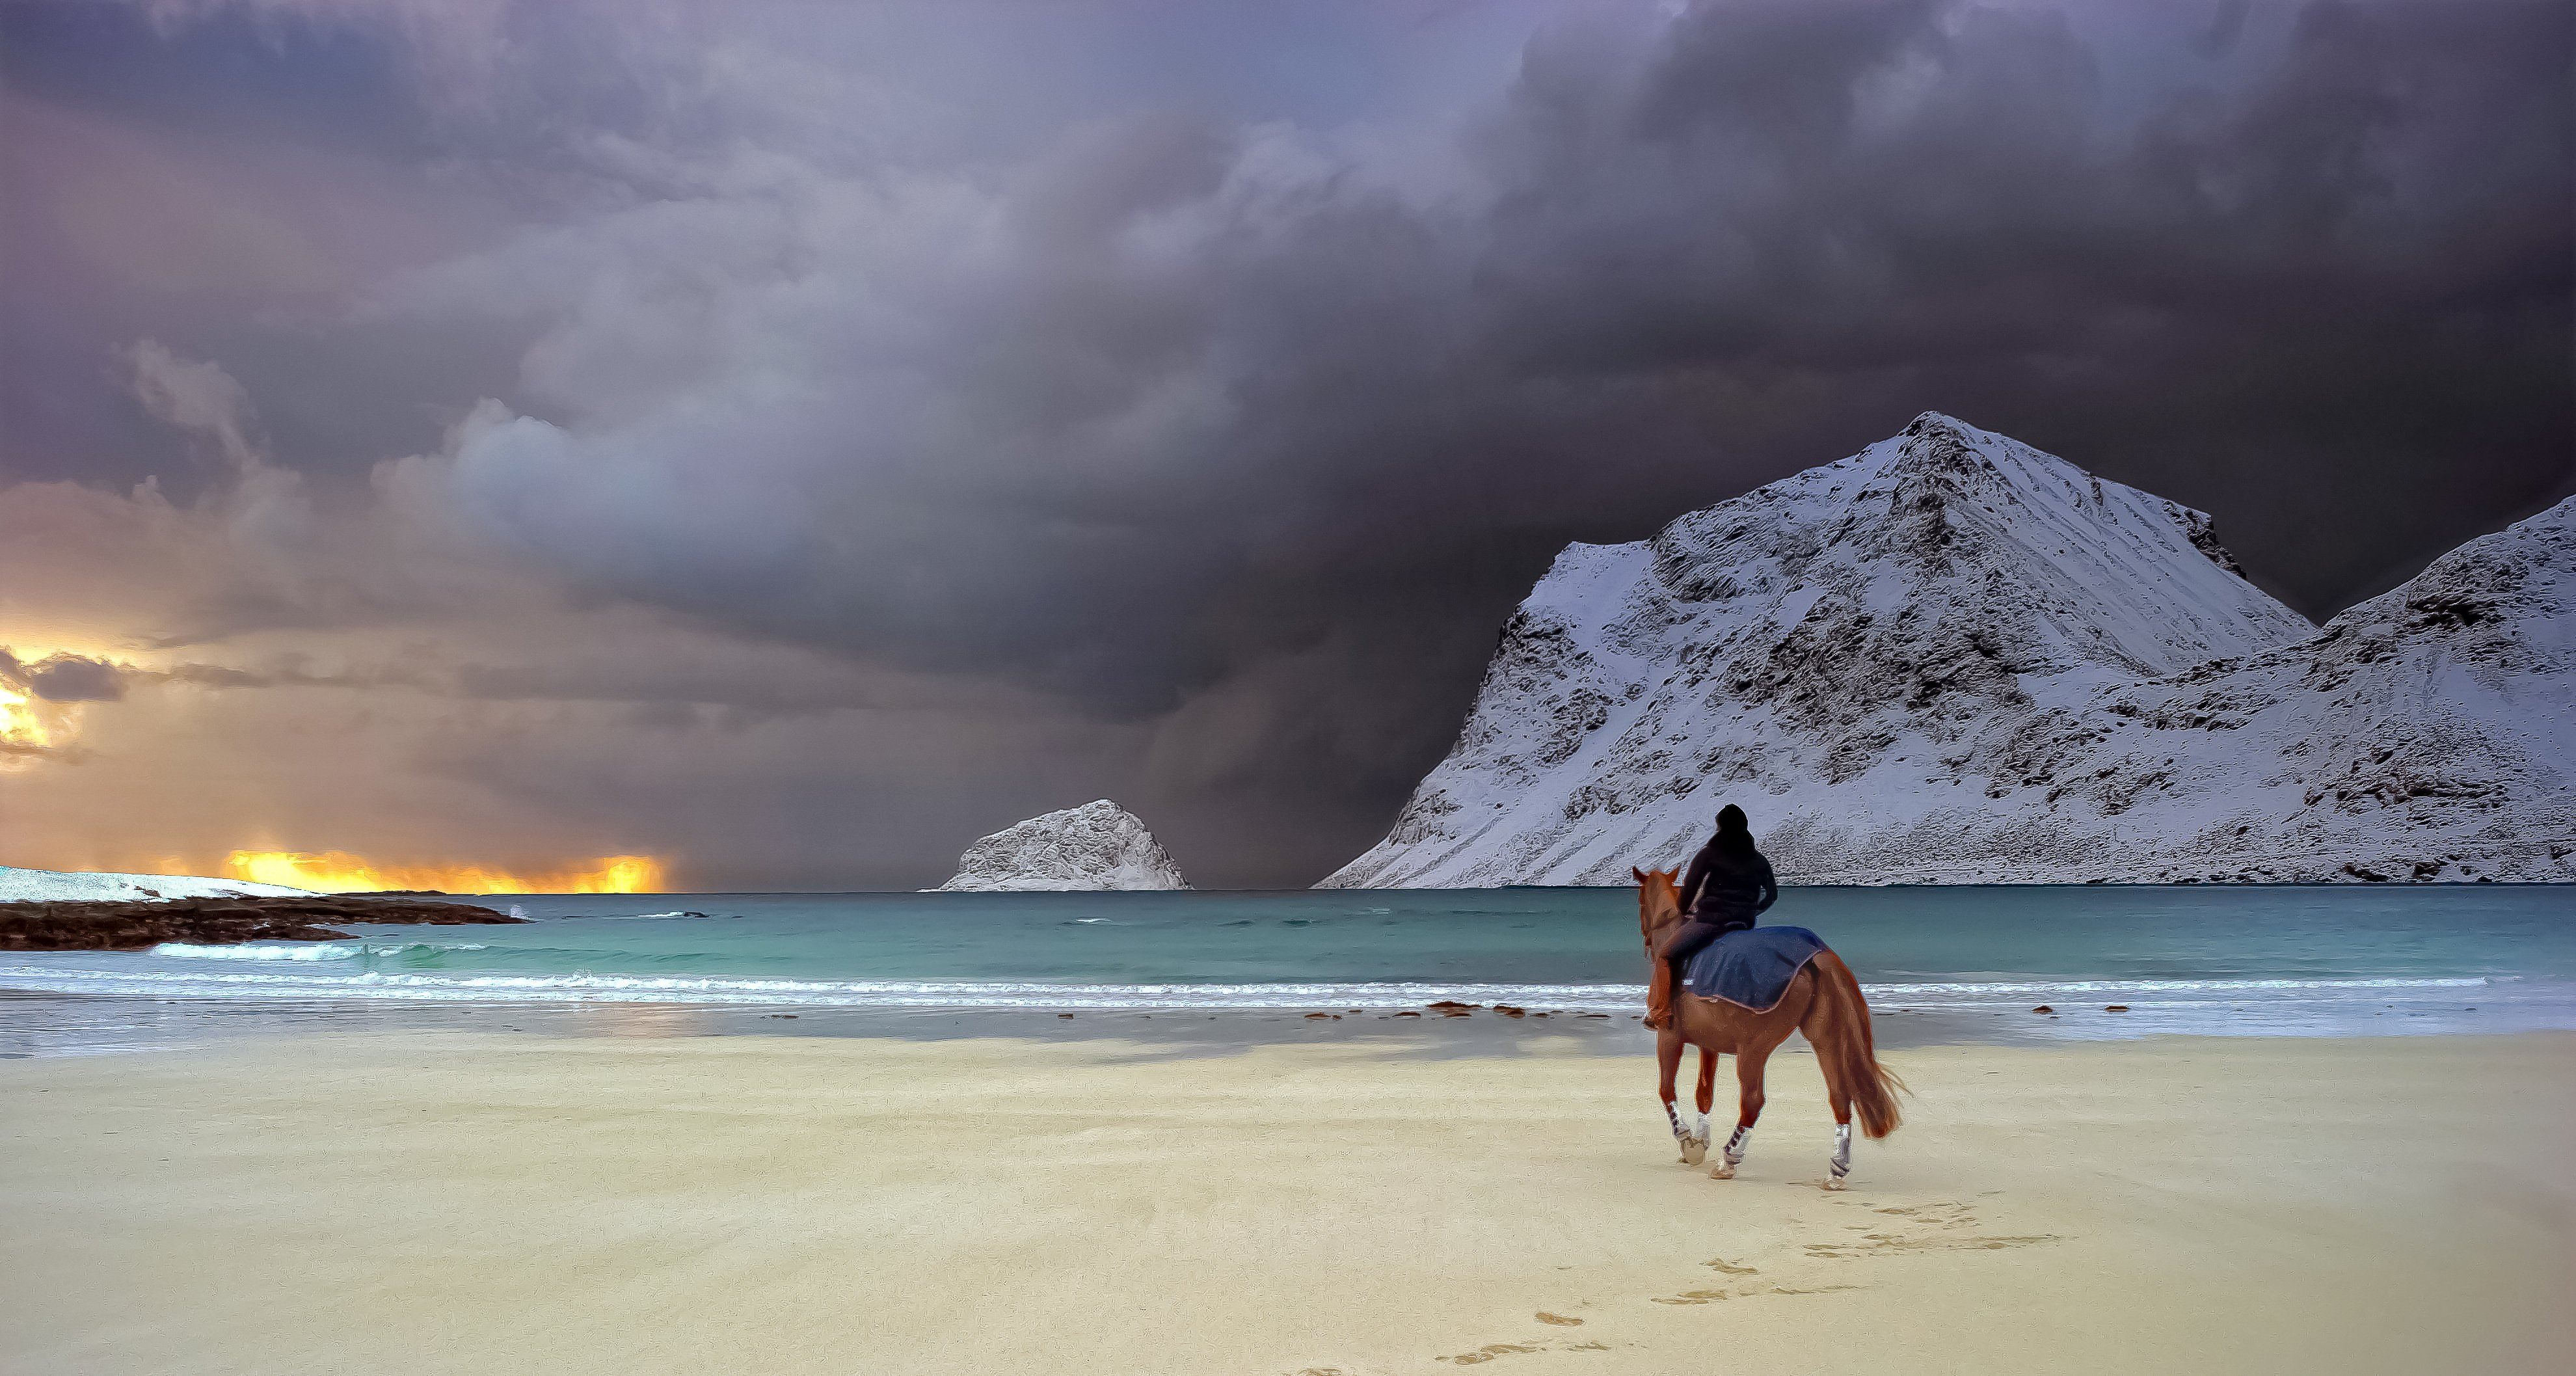 island mountain horse wallpaper - photo #16